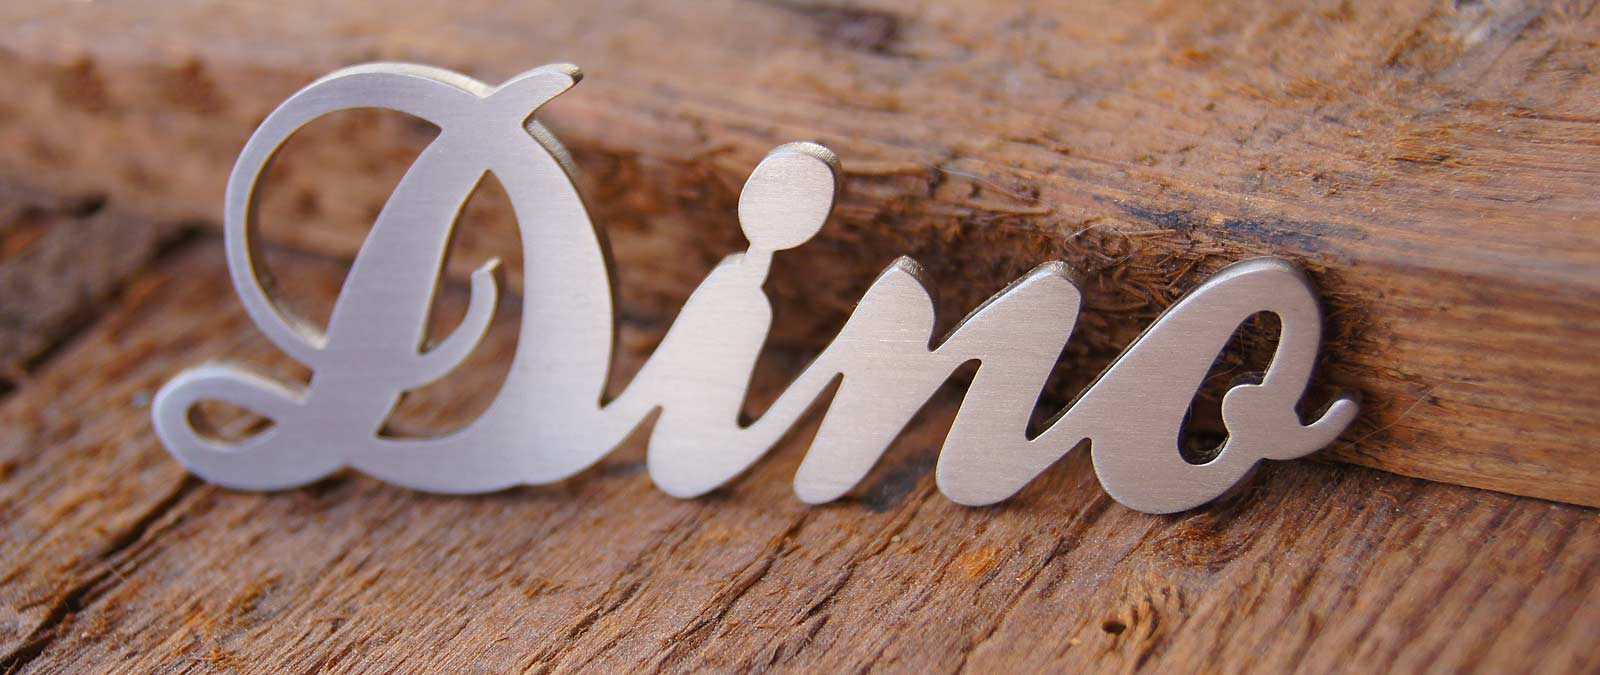 Create Your Custom Lettering Made of Stainless Steel - House Numbers